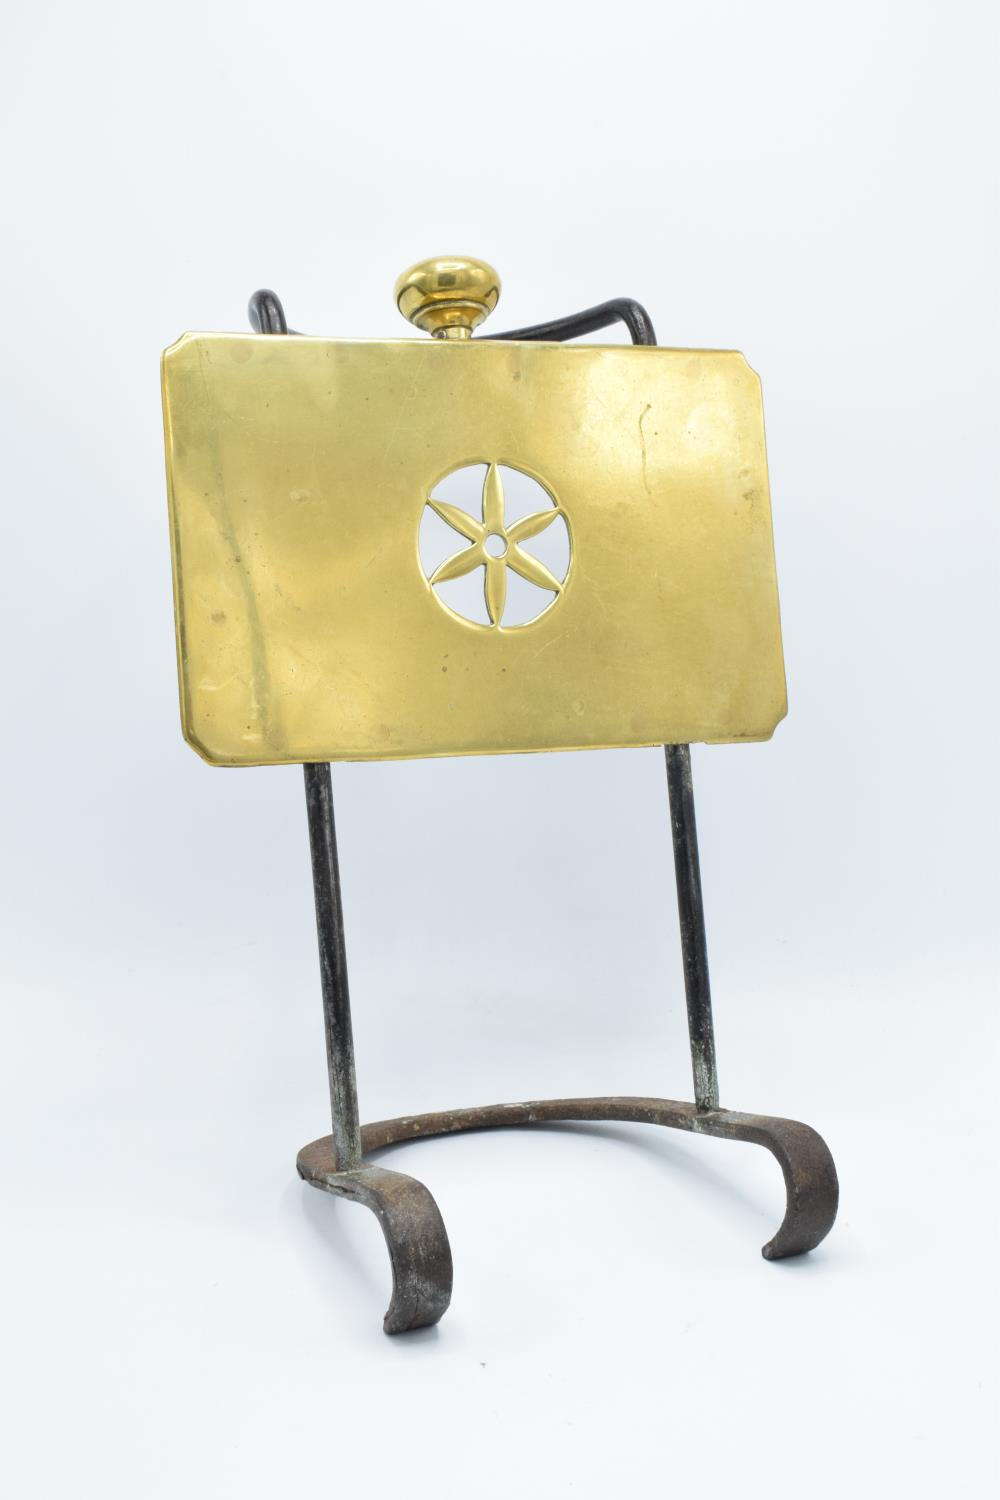 Late Victorian cast iron and brass kettle/ teapot stand for an open fire/ range